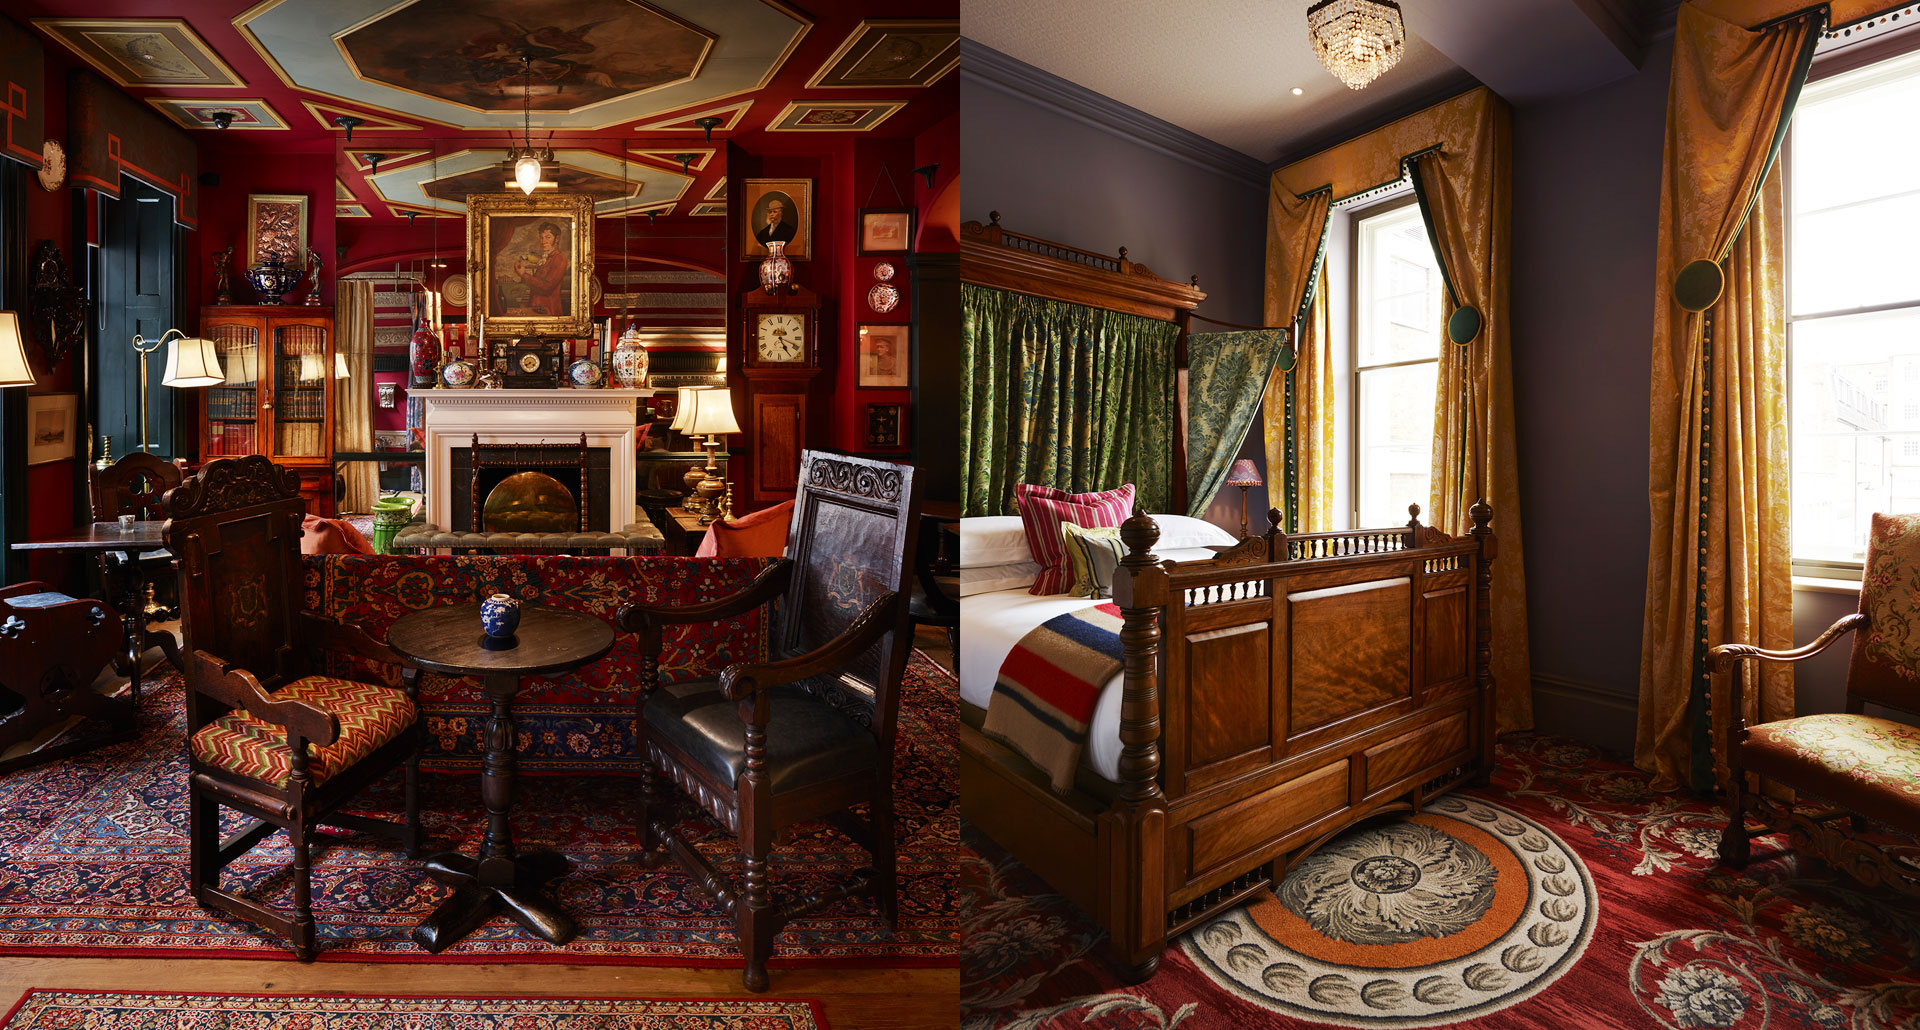 The Zetter Townhouse Marylebone boutique hotel in London, England